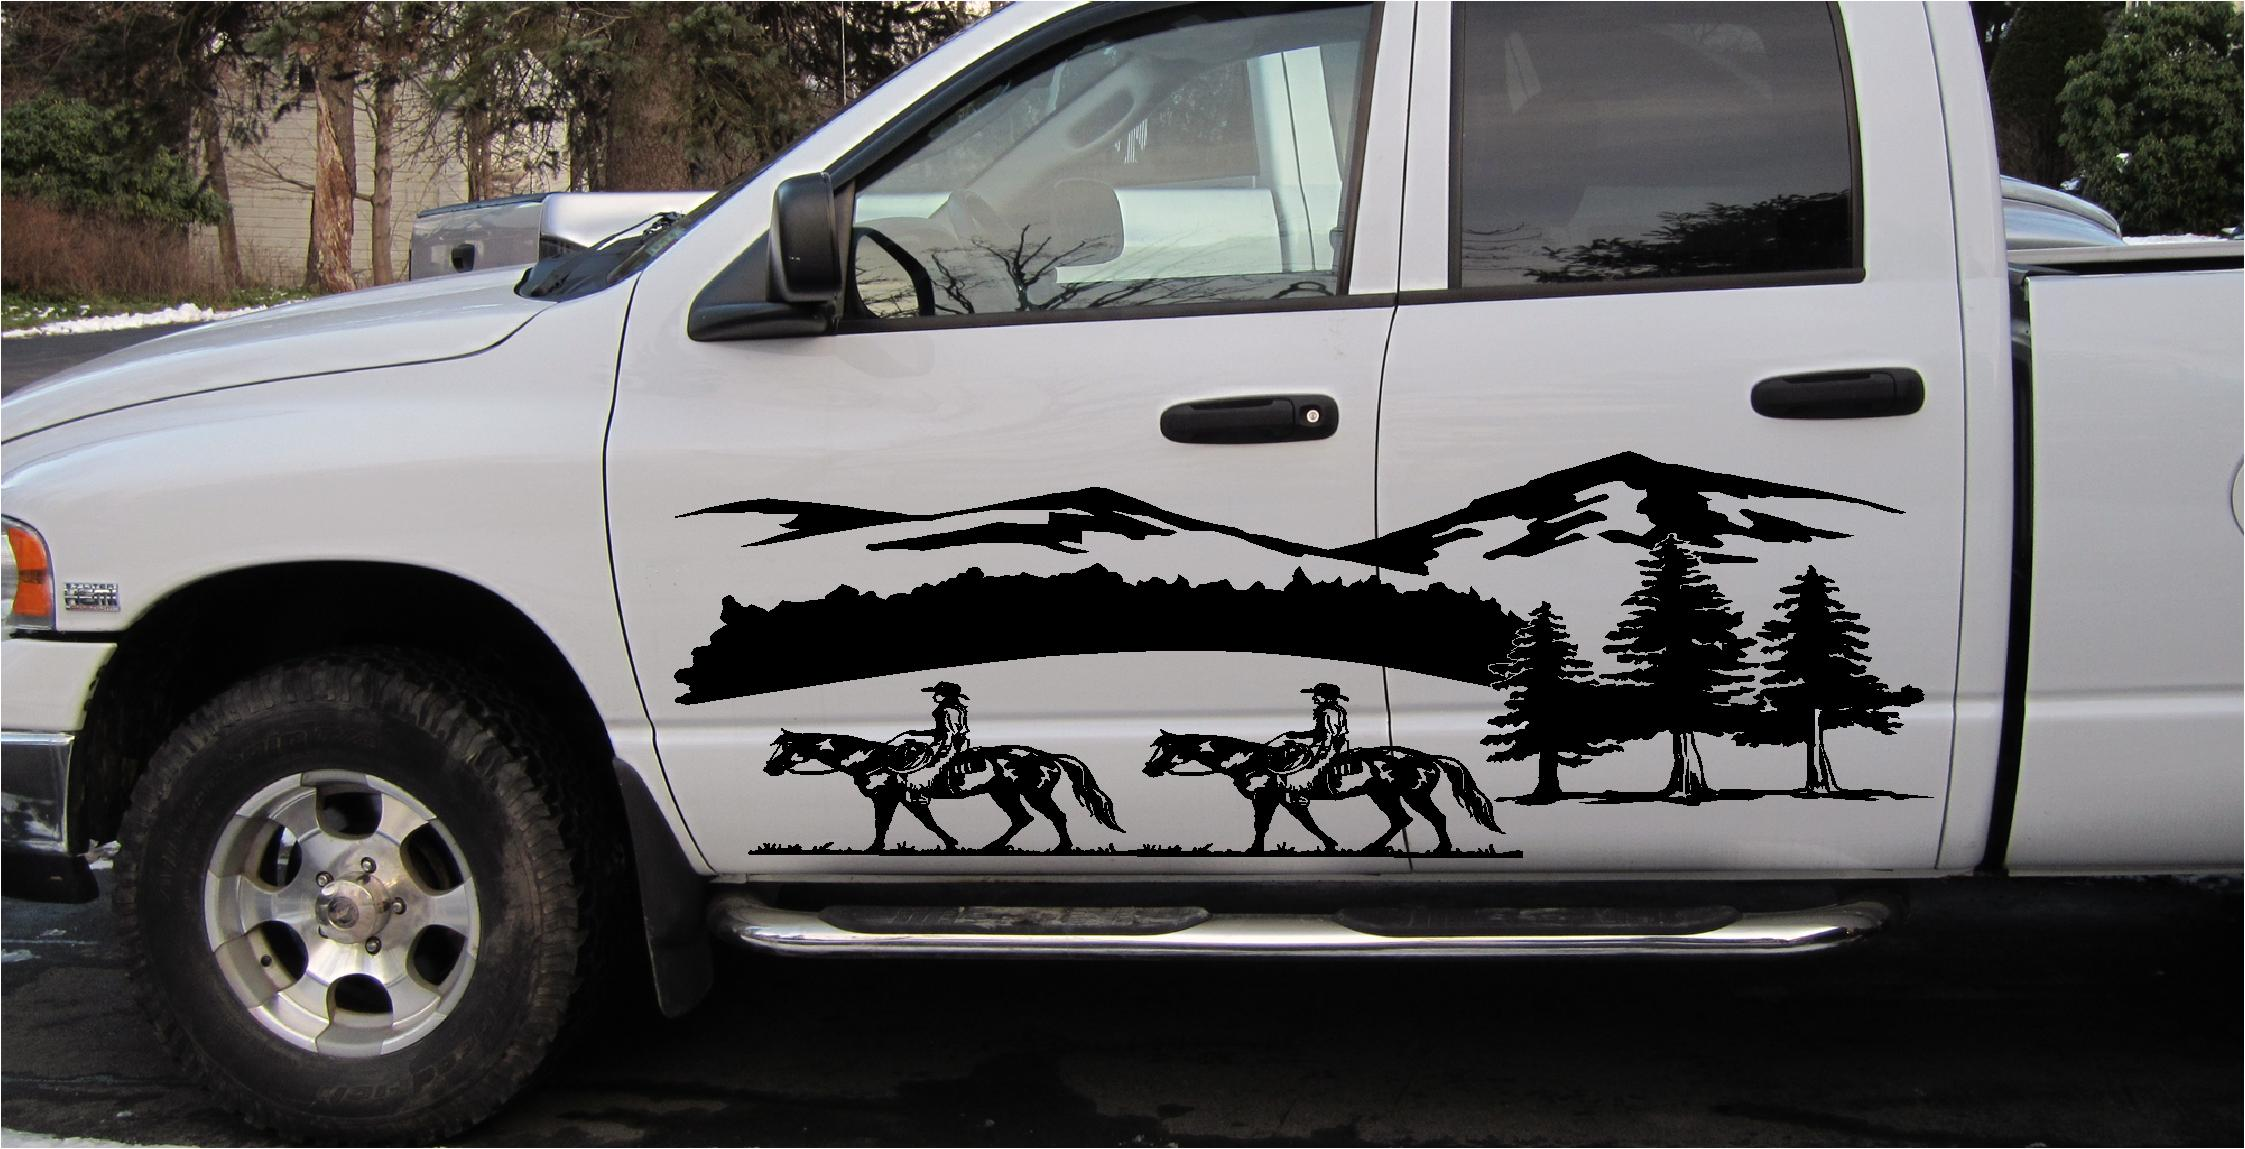 Horse Horses Cowboy Mountains Scenery Decal Decals Graphics - Cowboy custom vinyl decals for trucks